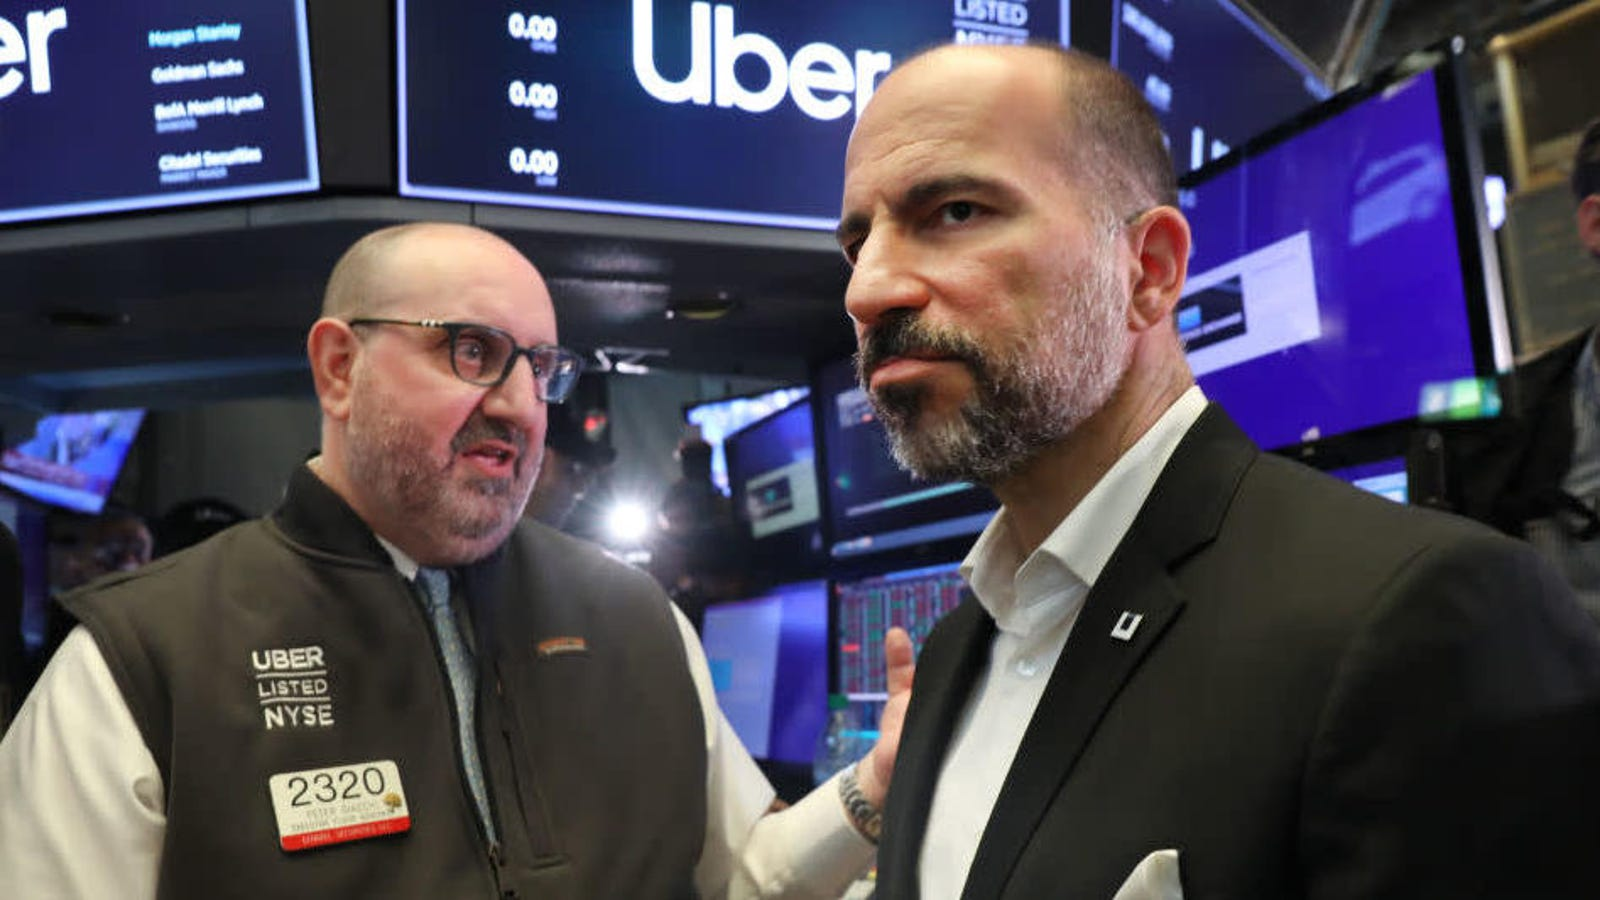 Congratulations to Uber, the Worst Performing IPO in U.S. Stock Market History - Gizmodo